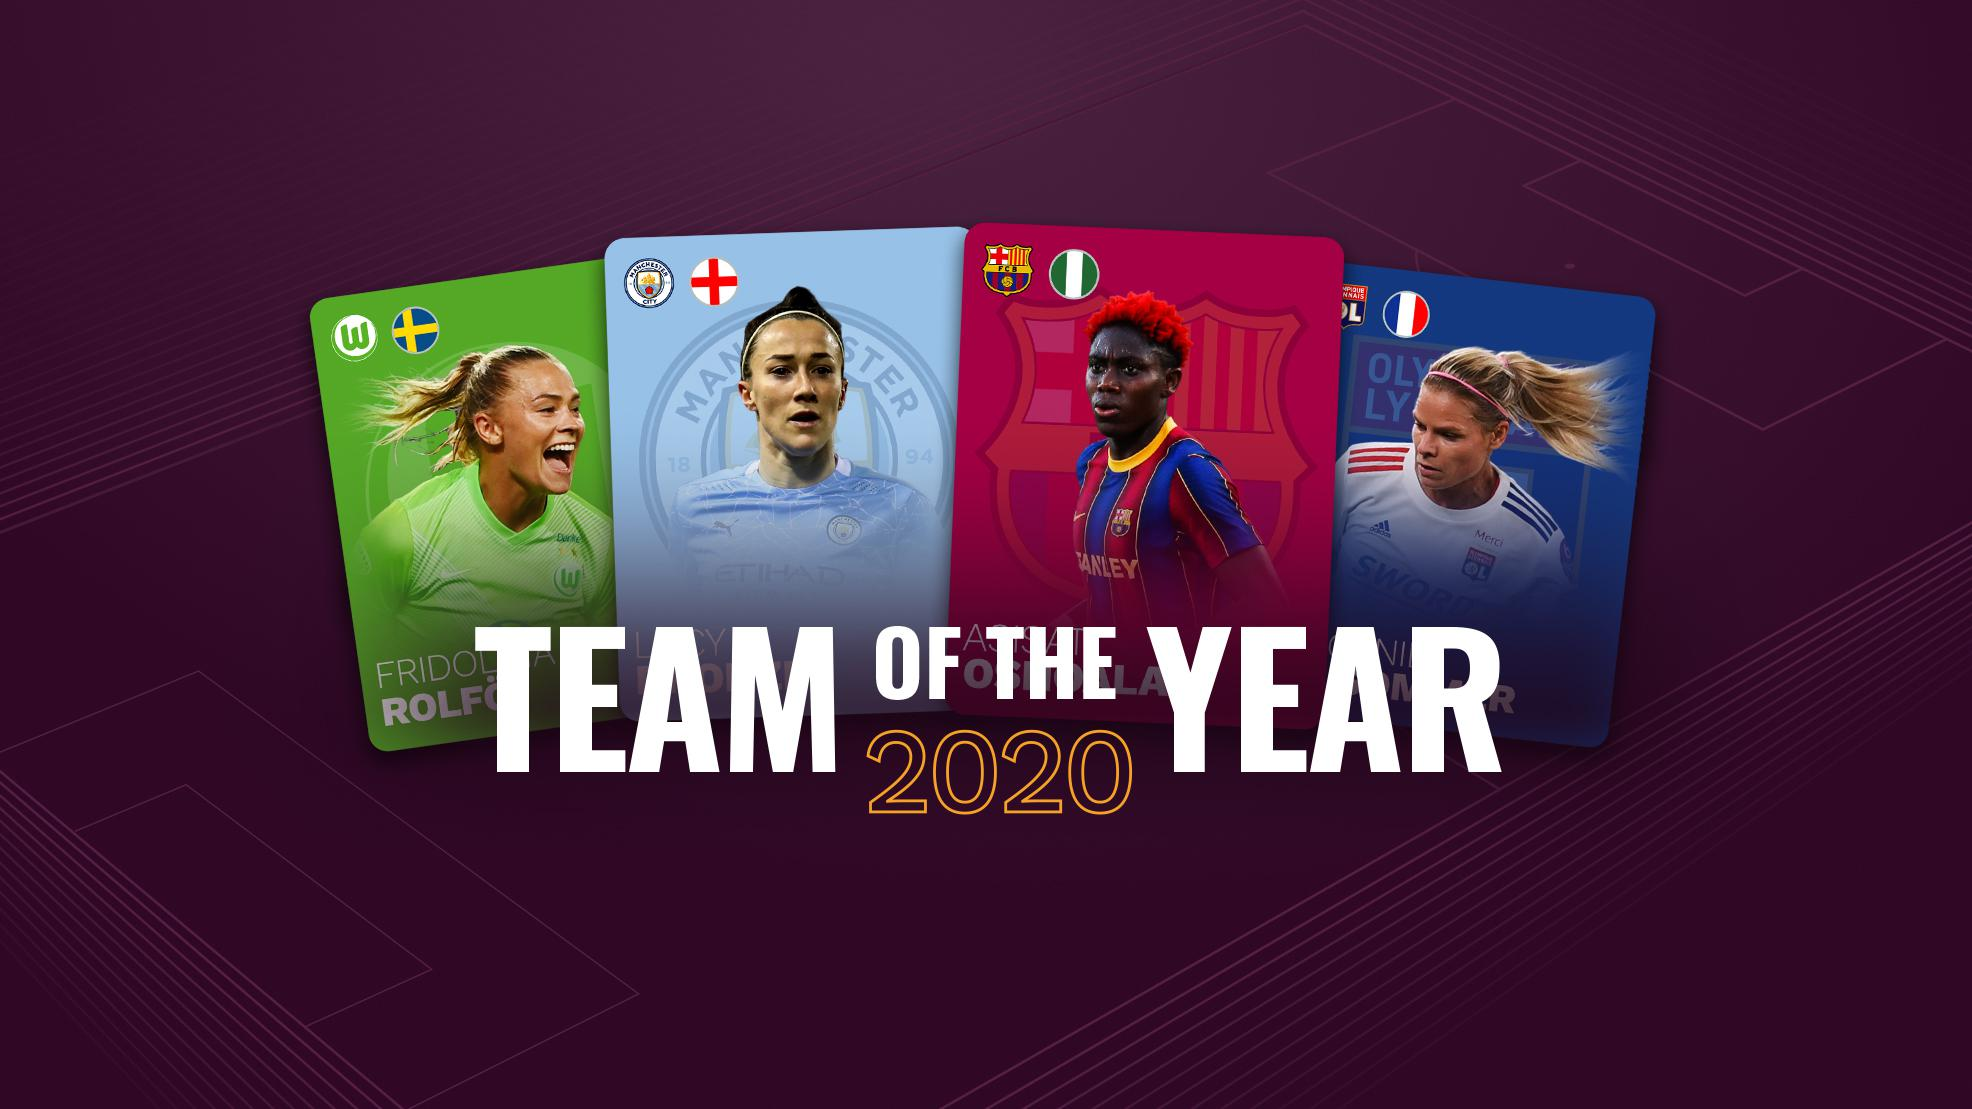 UEFA Team of the year, Football Express